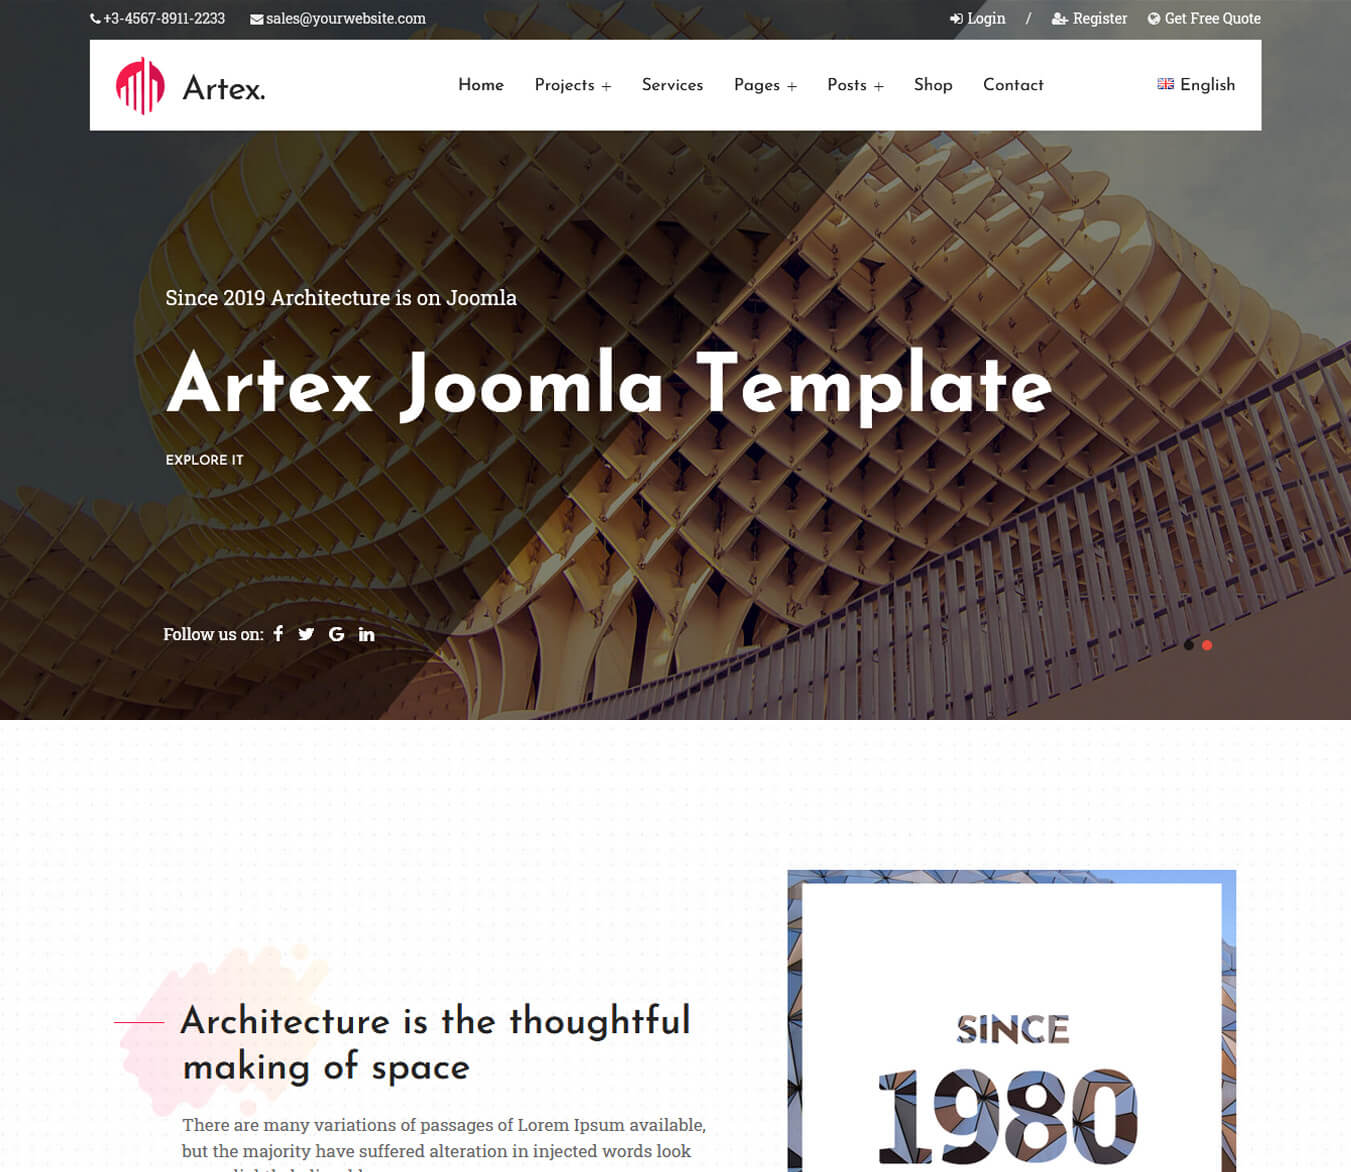 Artex - Architecture & Interior Design Joomla Template